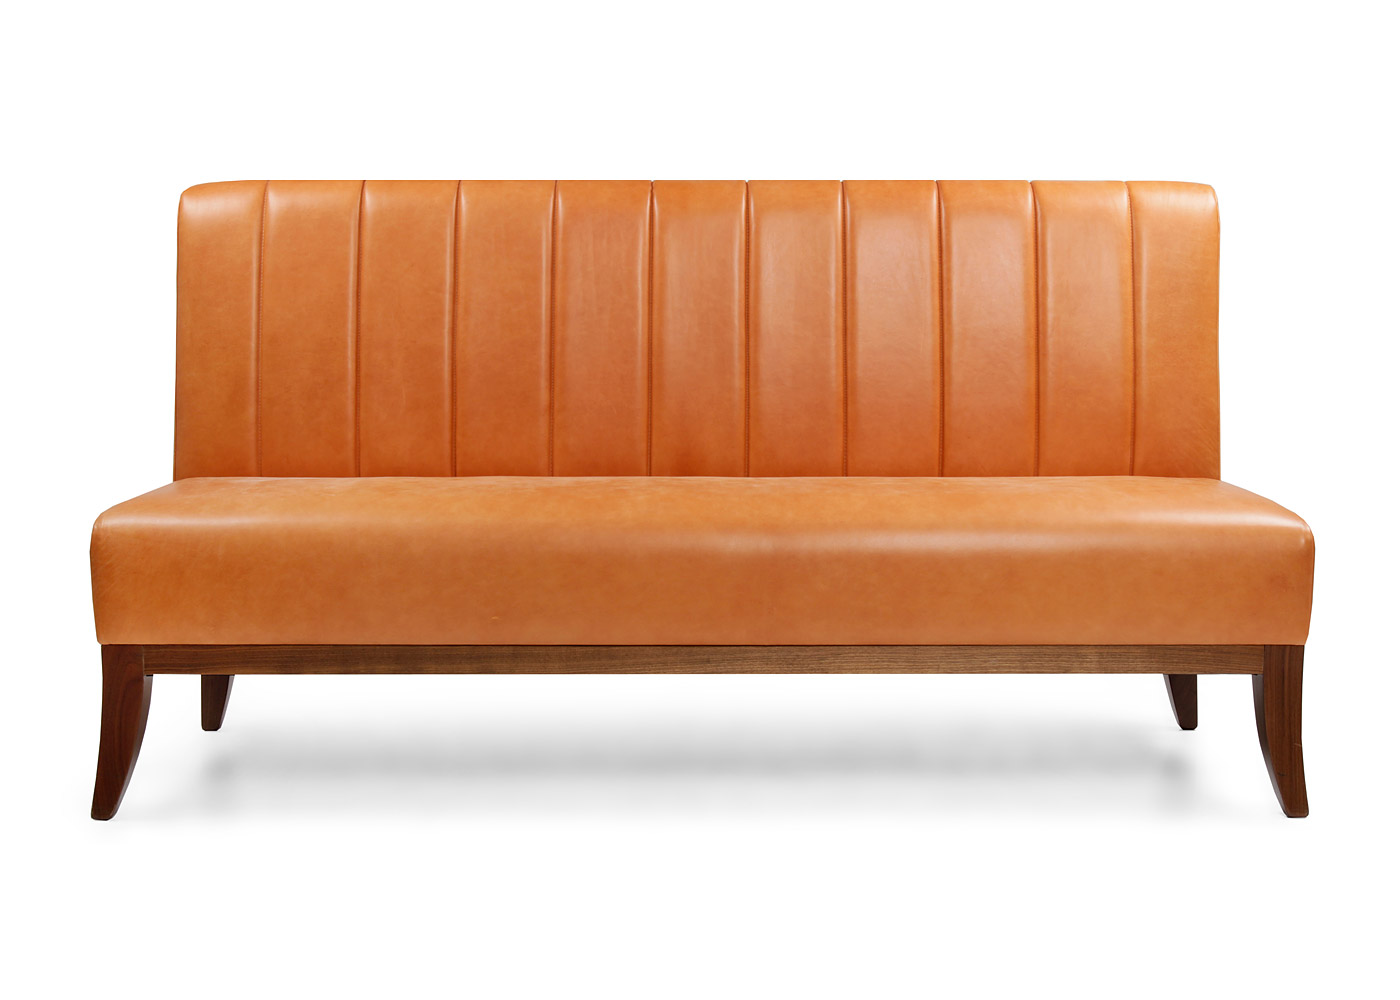 Fluted Banquette with legs